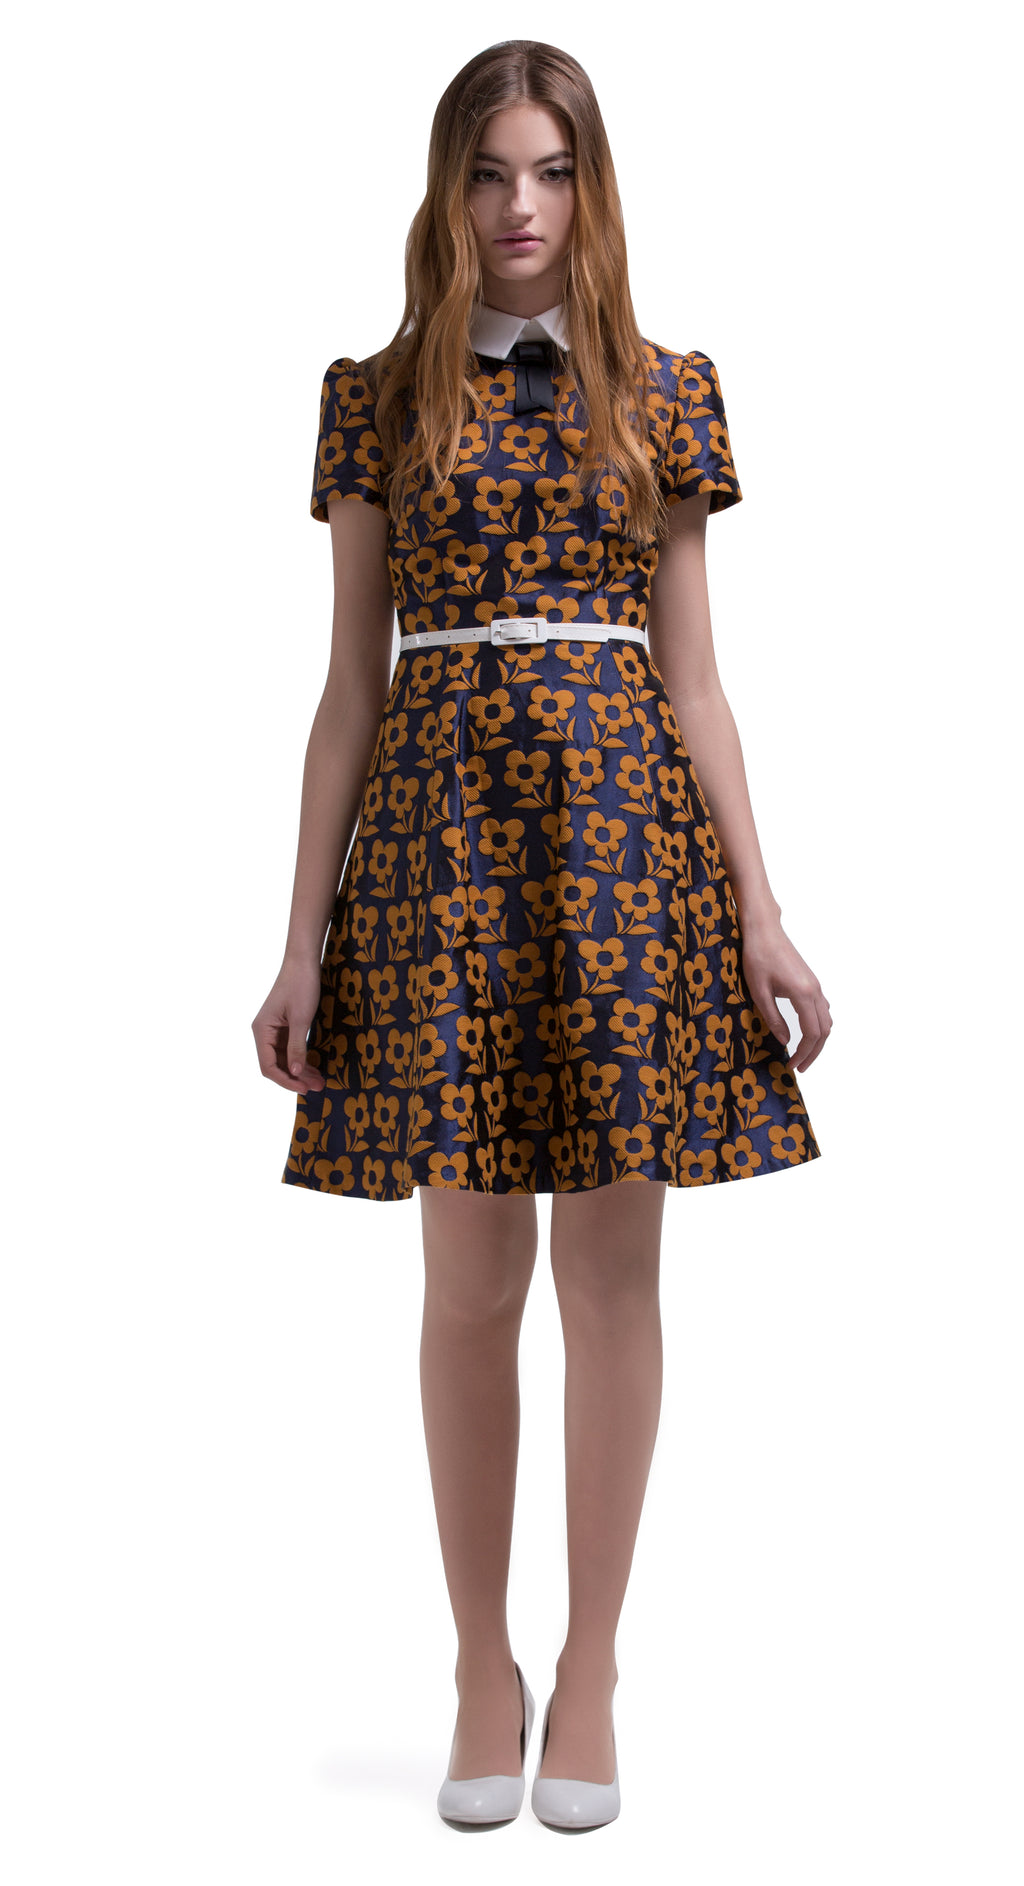 This fitted vintage style party dress is made of a medium weight French floral weave, broken up by a detachable white belt and simple white collar with a small blue bow and slightly puffed sleeves. Navy blue and mustard brown Autumn colours. Pairs well with the coat of the same fabric or as a stand-alone entrance maker.  Choose bespoke for alternative sleeve length, flair or red floral and light copper colour tones.